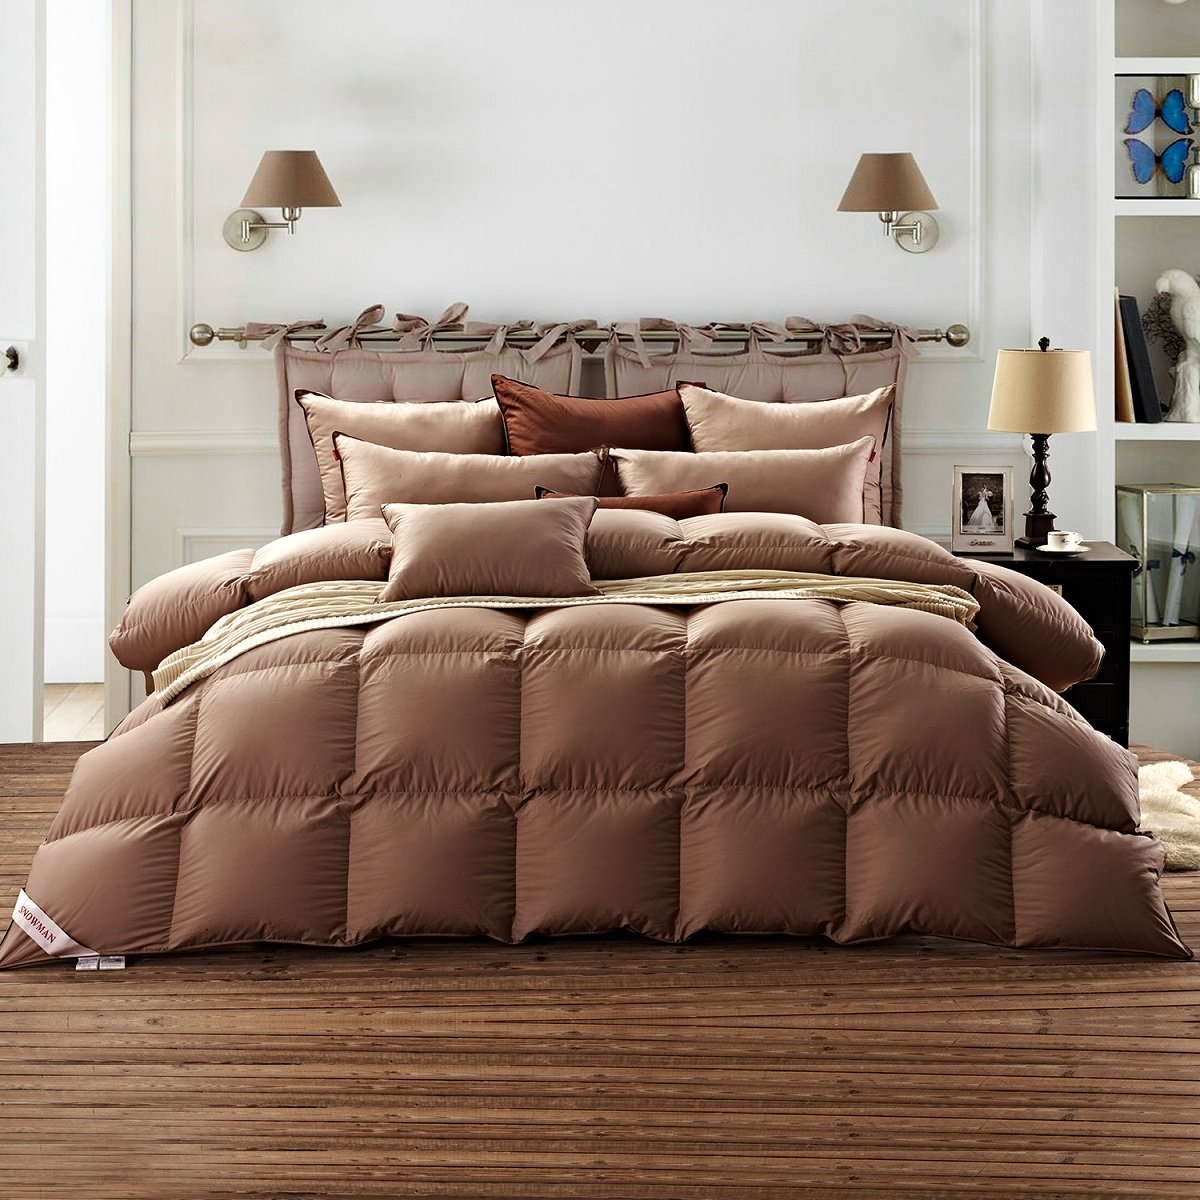 Luxurious Goose Down Comforter King Size 100% Cotton Shell with Corner Tab-Extra Warm, Khaki Solid